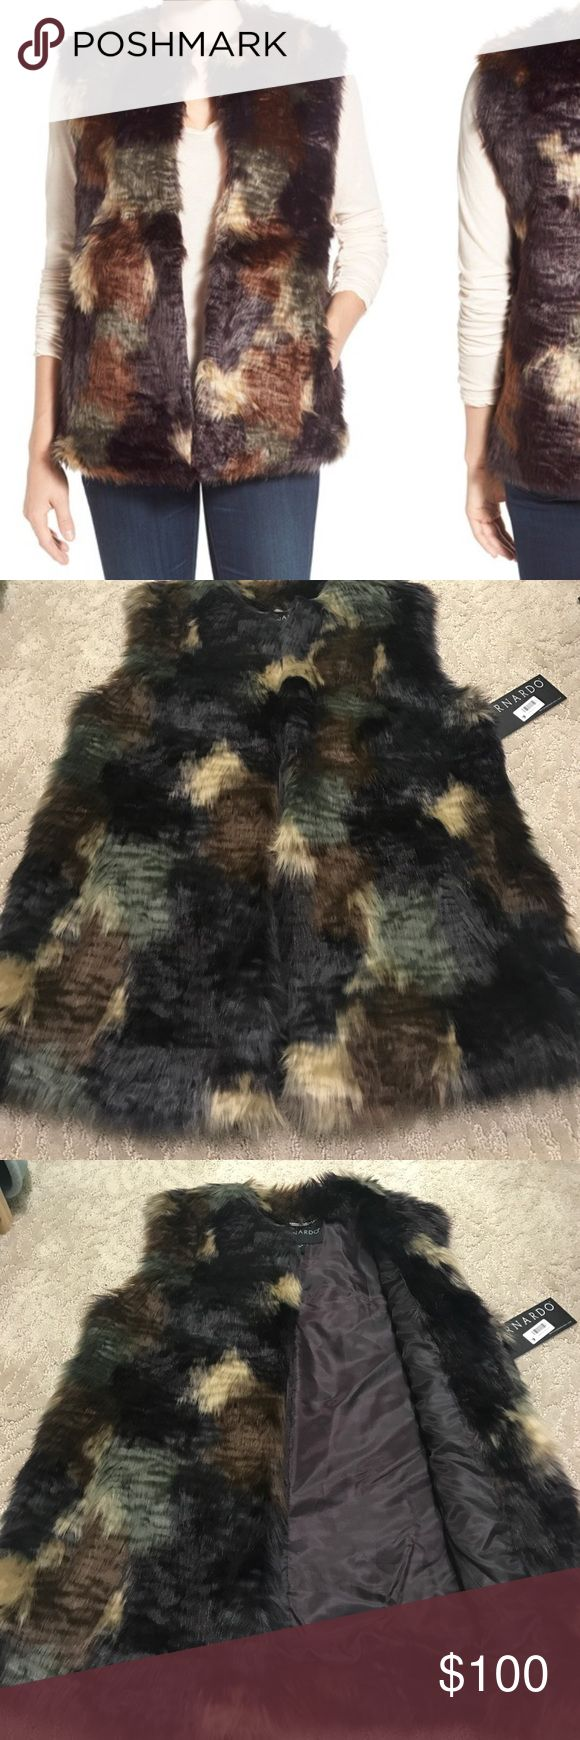 Bernardo Faux Fur Patchwork Vest Gorgeous multi coloured faux fur vest by Bernardo. Super soft with pockets! Received as gift but it's just a bit too big on me: 5 star review on Nordstrom website. Never worn, new with tags! Bernardo Jackets & Coats Vests